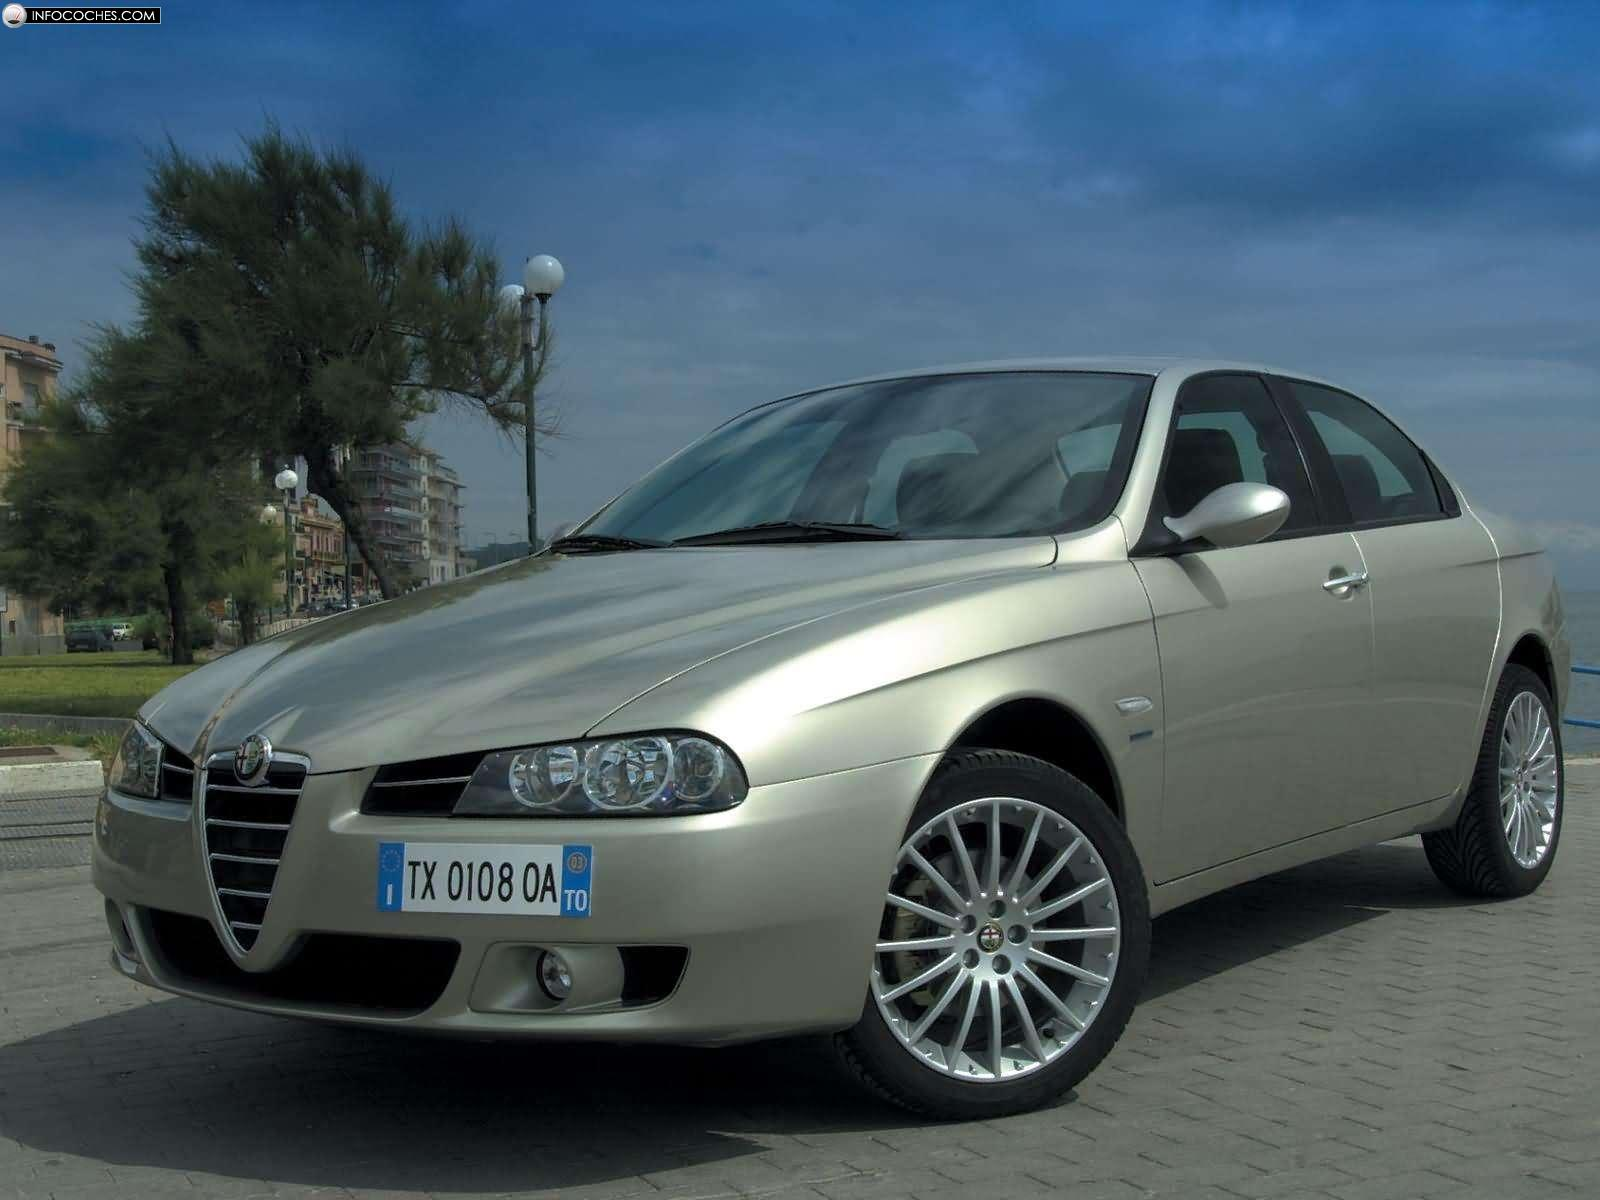 2003 Alfa Romeo 156 Sedan 4-door